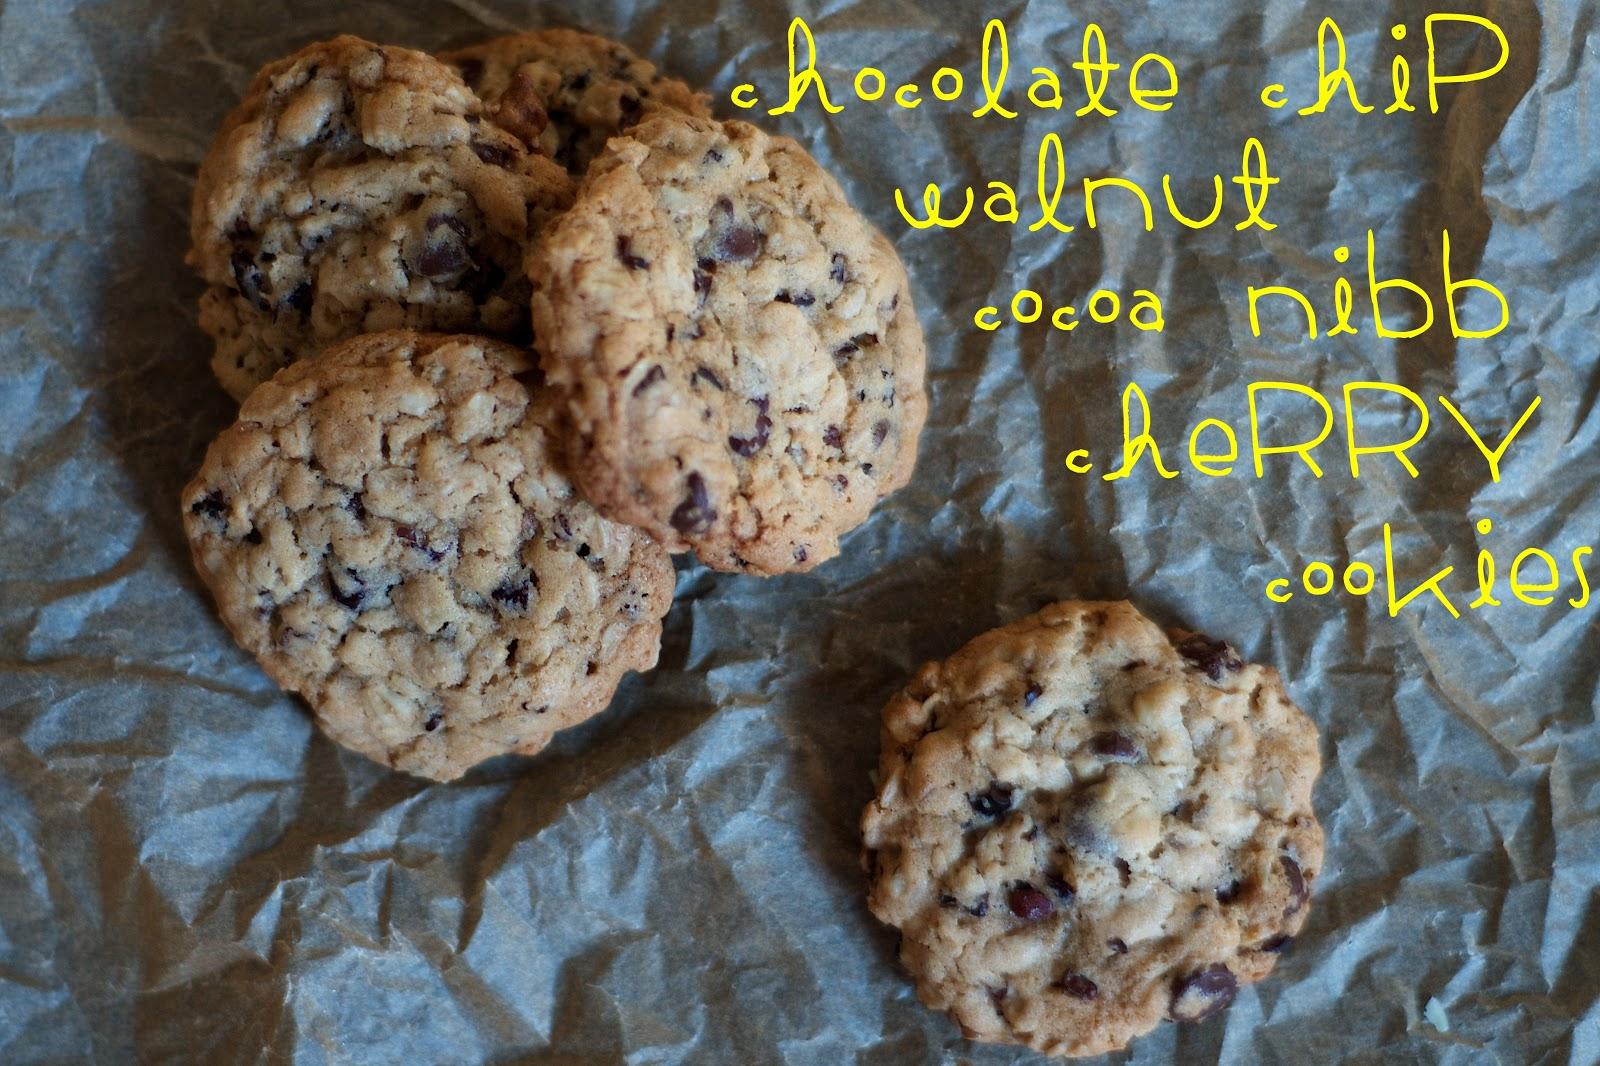 The Ginger Cook: Chocolate Chip Walnut Cocoa Nib Cherry Cookies